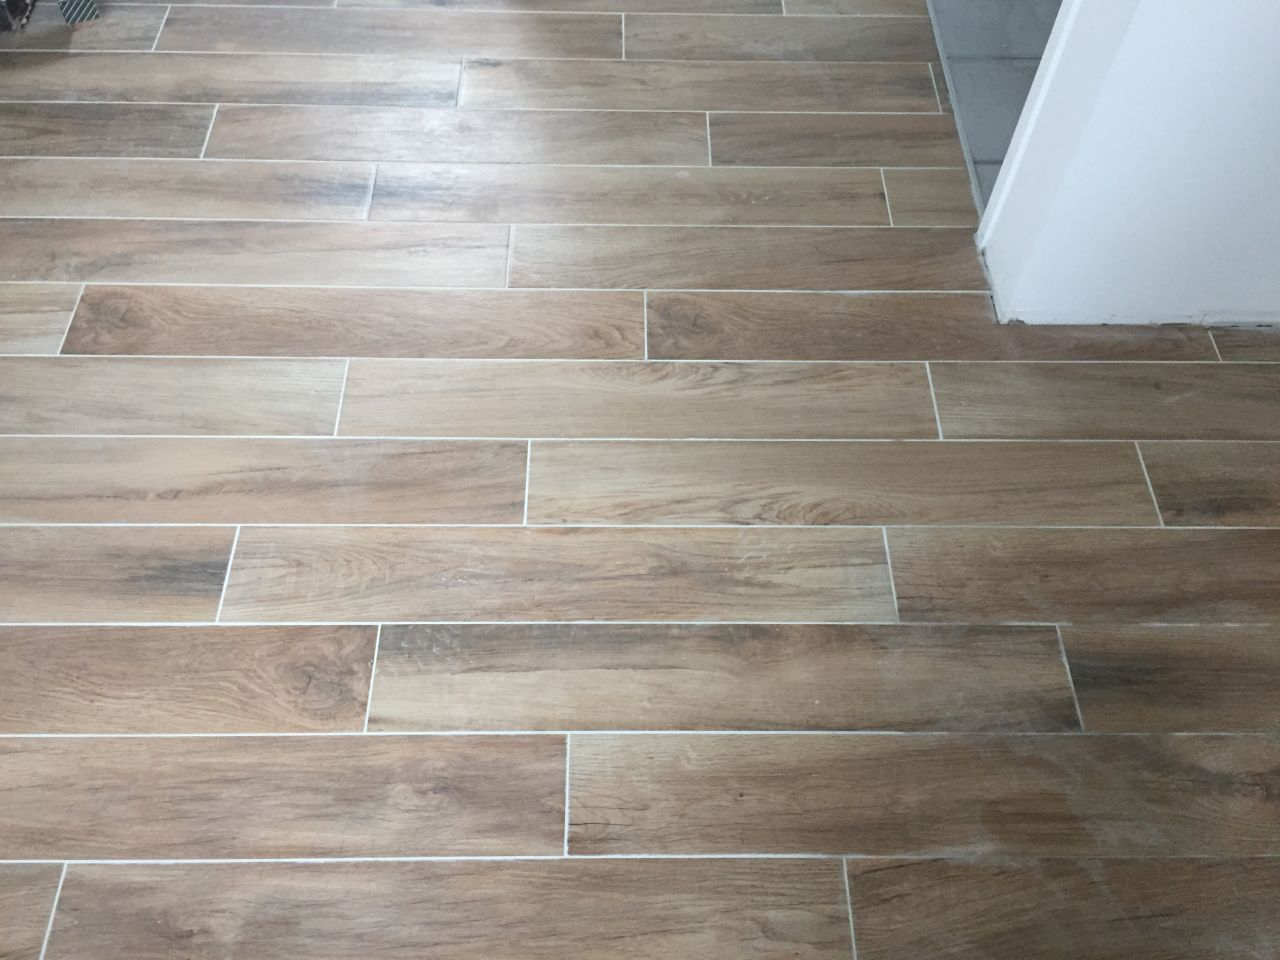 Image carrelage imitation parquet 28 images carrelage for Carrelage parquet